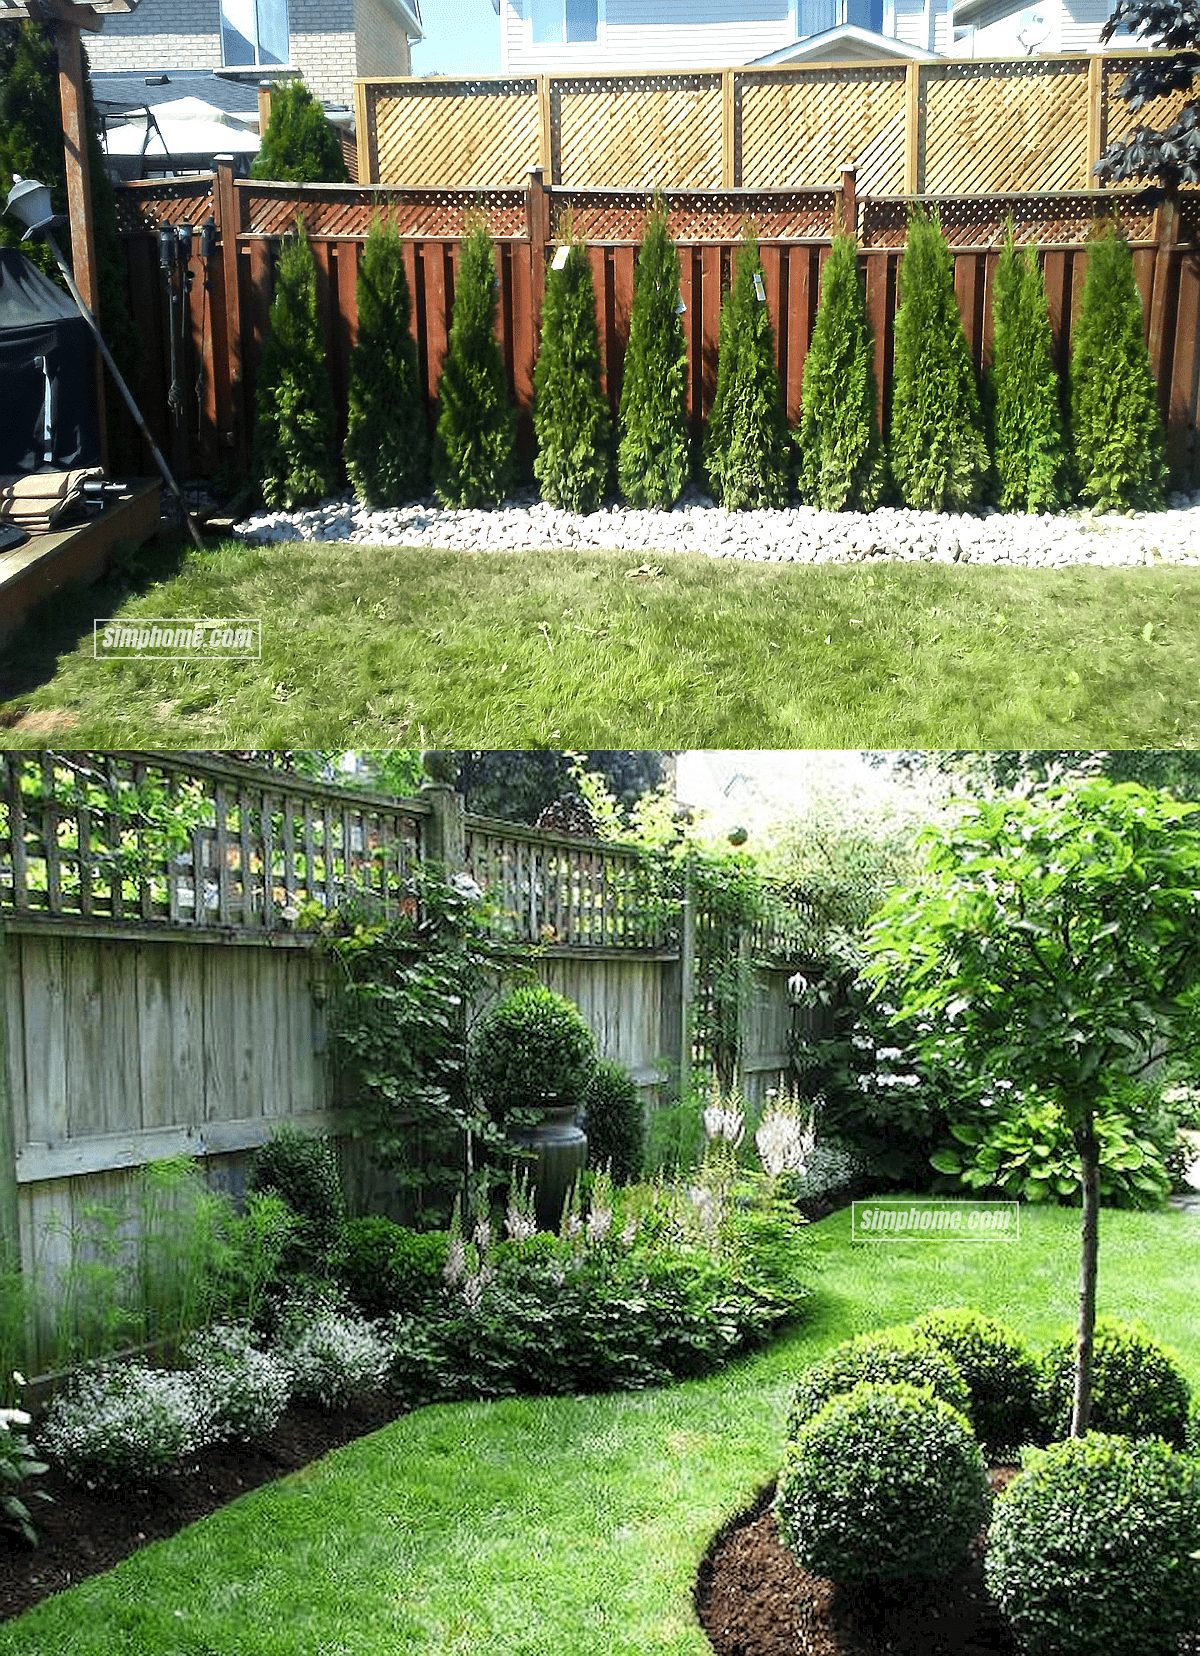 16.17.SIMPHOME.COM pin ardelle gotcher on decor outdoor and backyard privacy landscaping trees and landscape